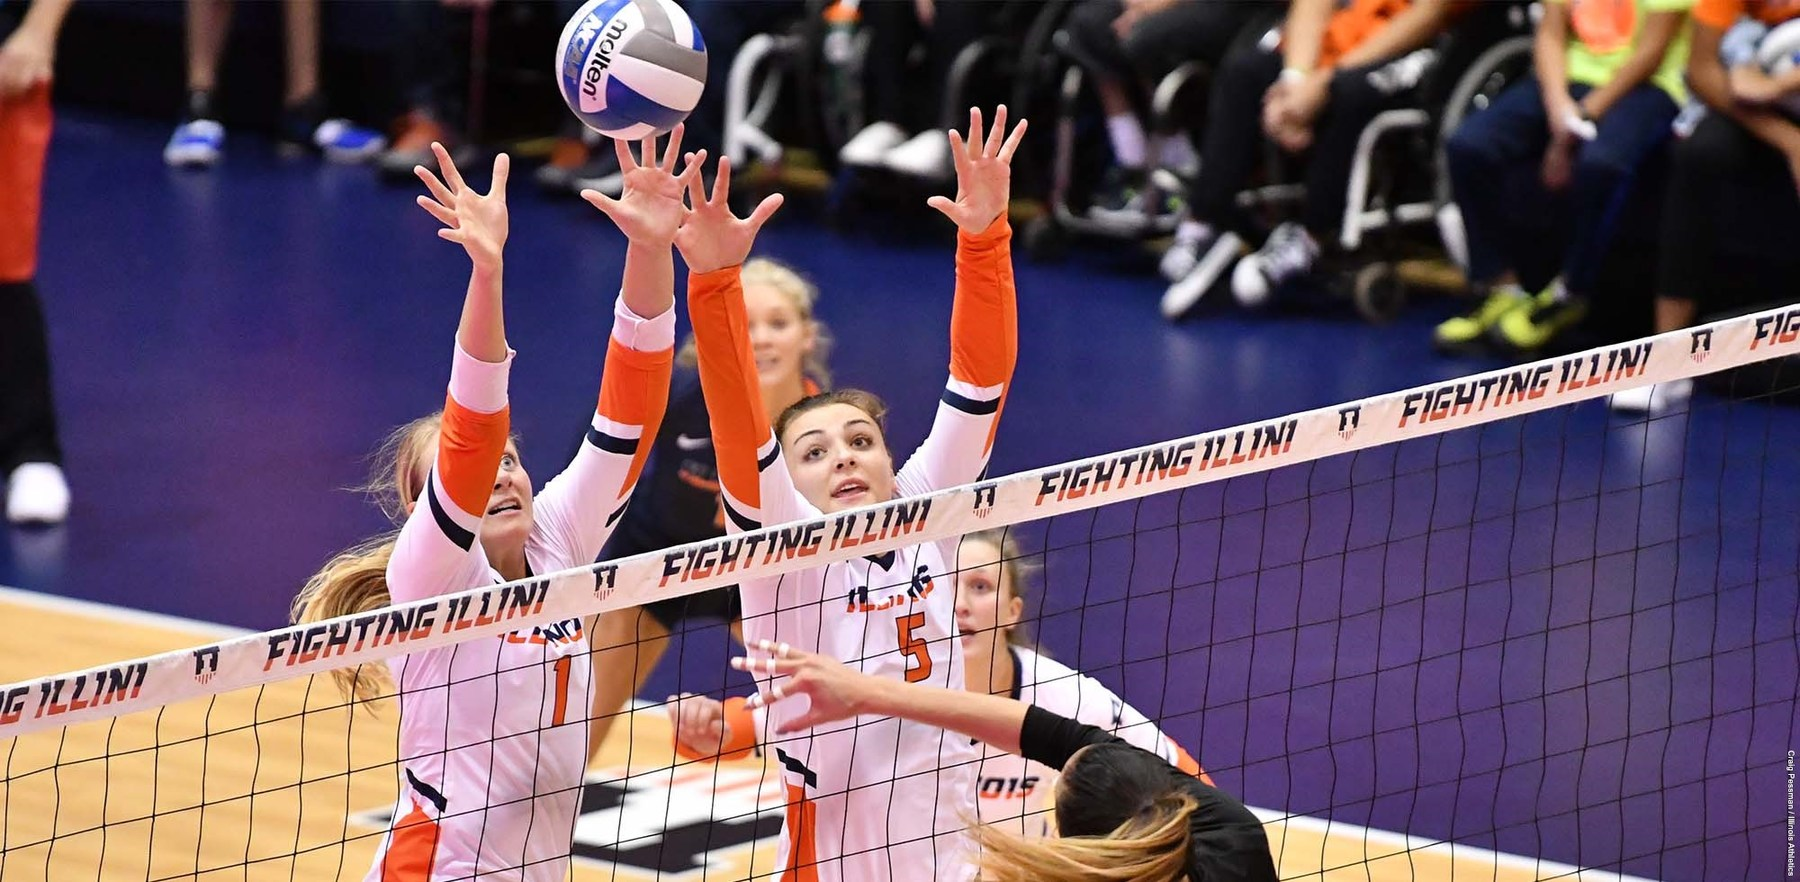 Volleyball players block a shot close to the net